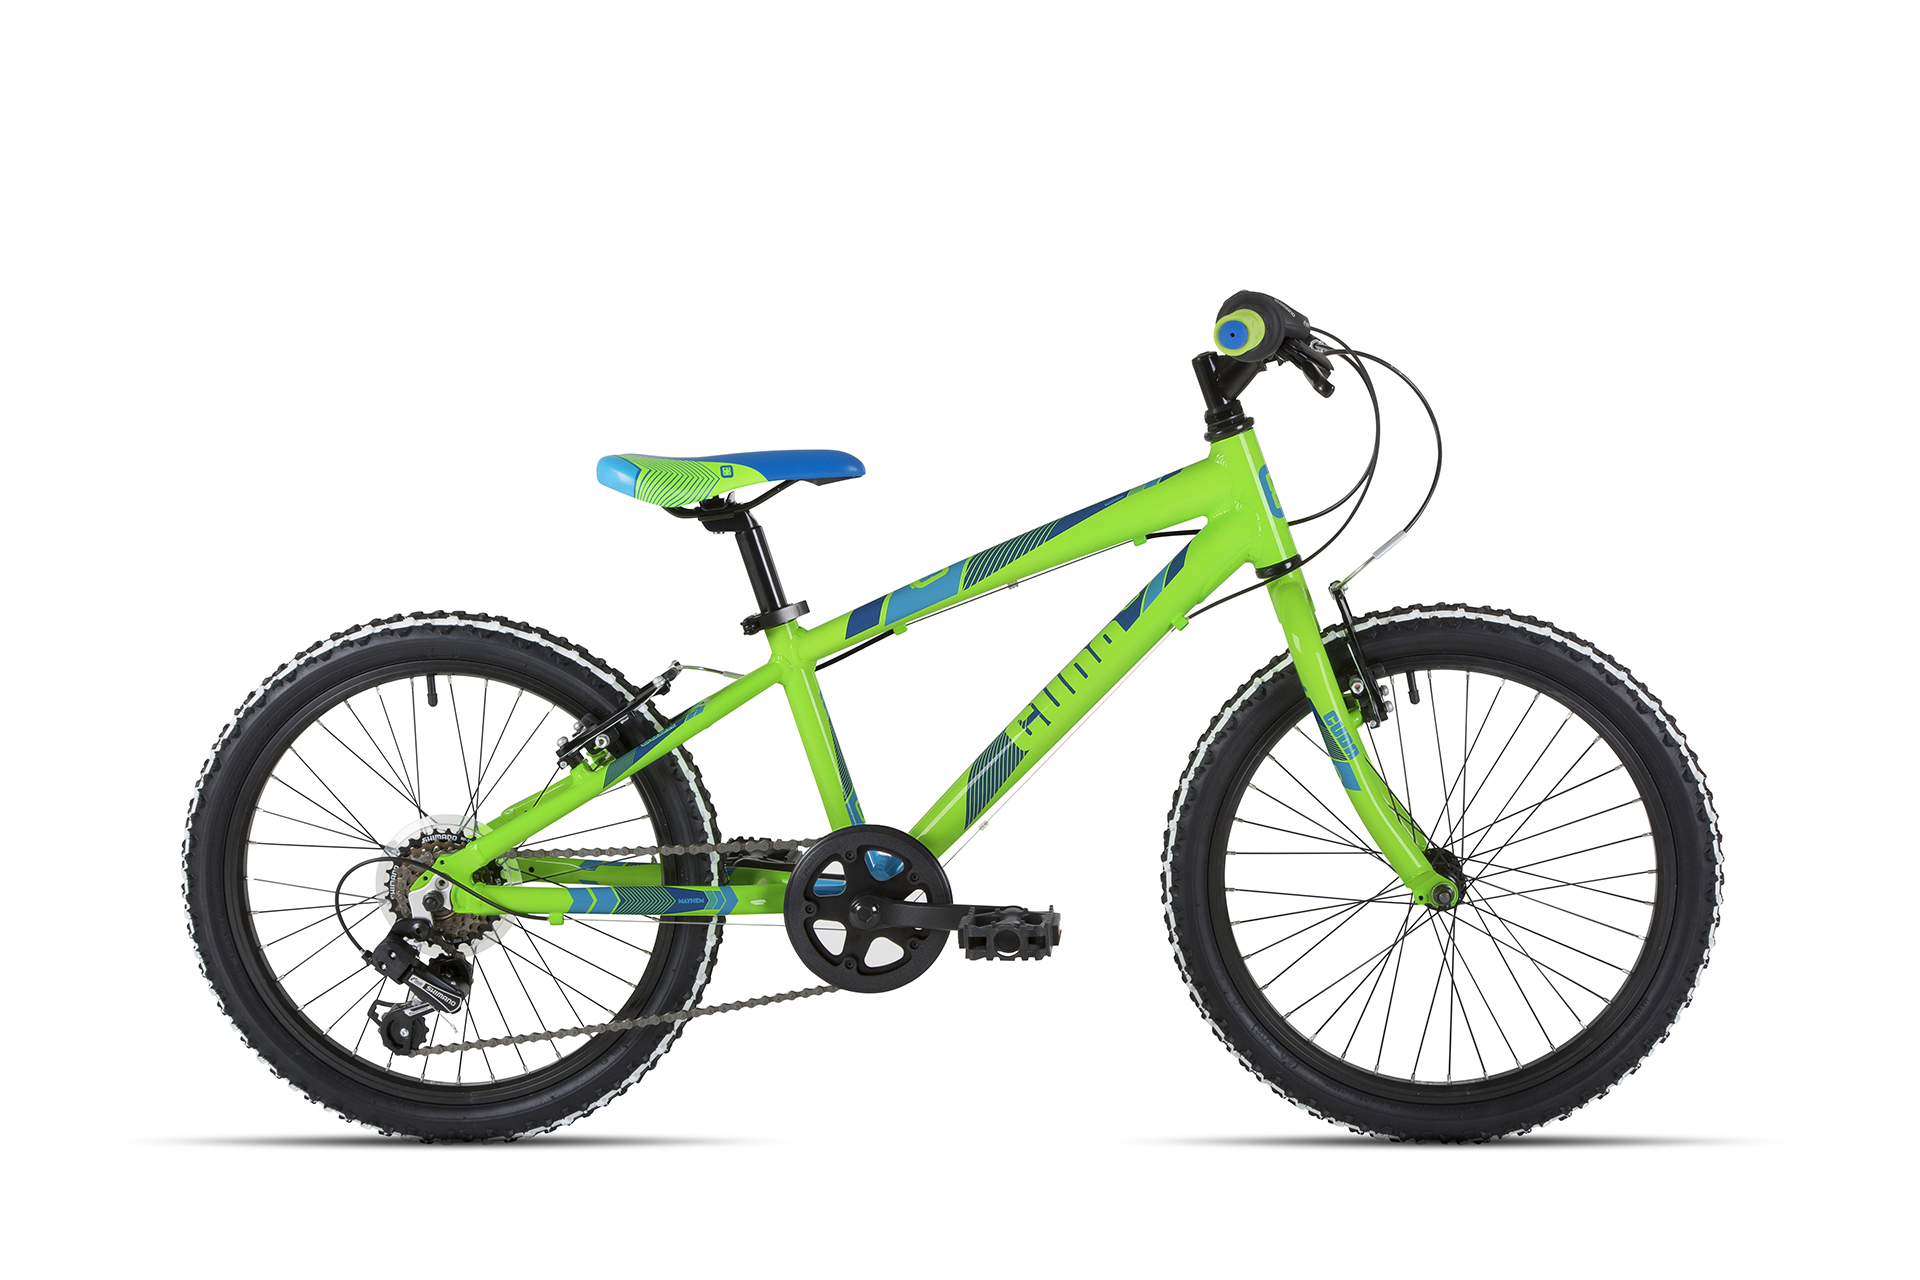 Mayhem 20 Quot Boys Mountain Bike Cuda Bikes Cuda Bikes